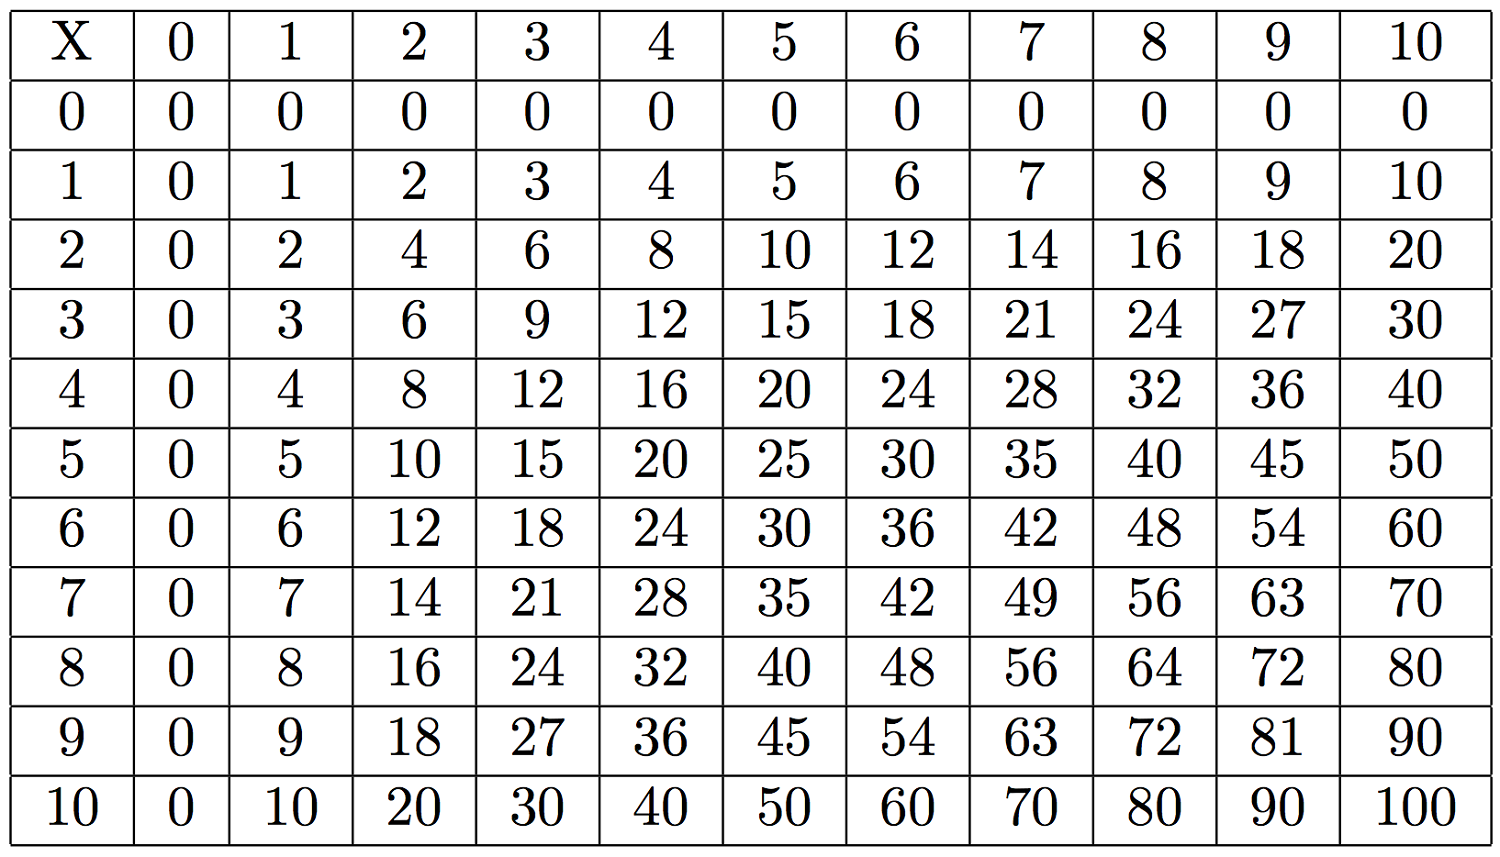 times-table-chart-100-simple